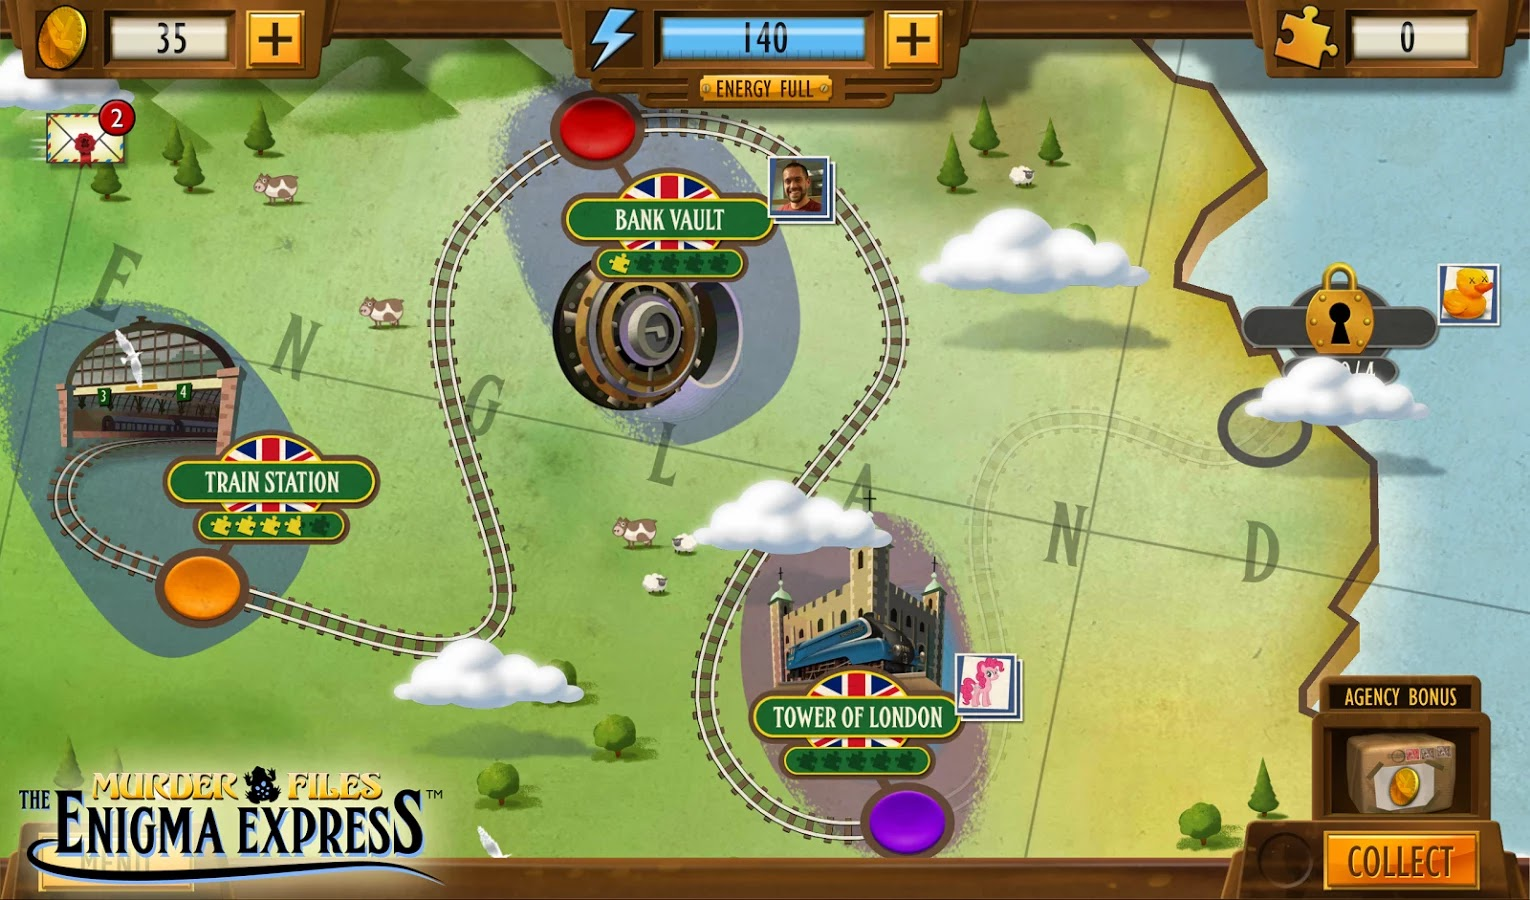 Games Murder Files: Enigma Express Apk v1.15 Mod hack ...